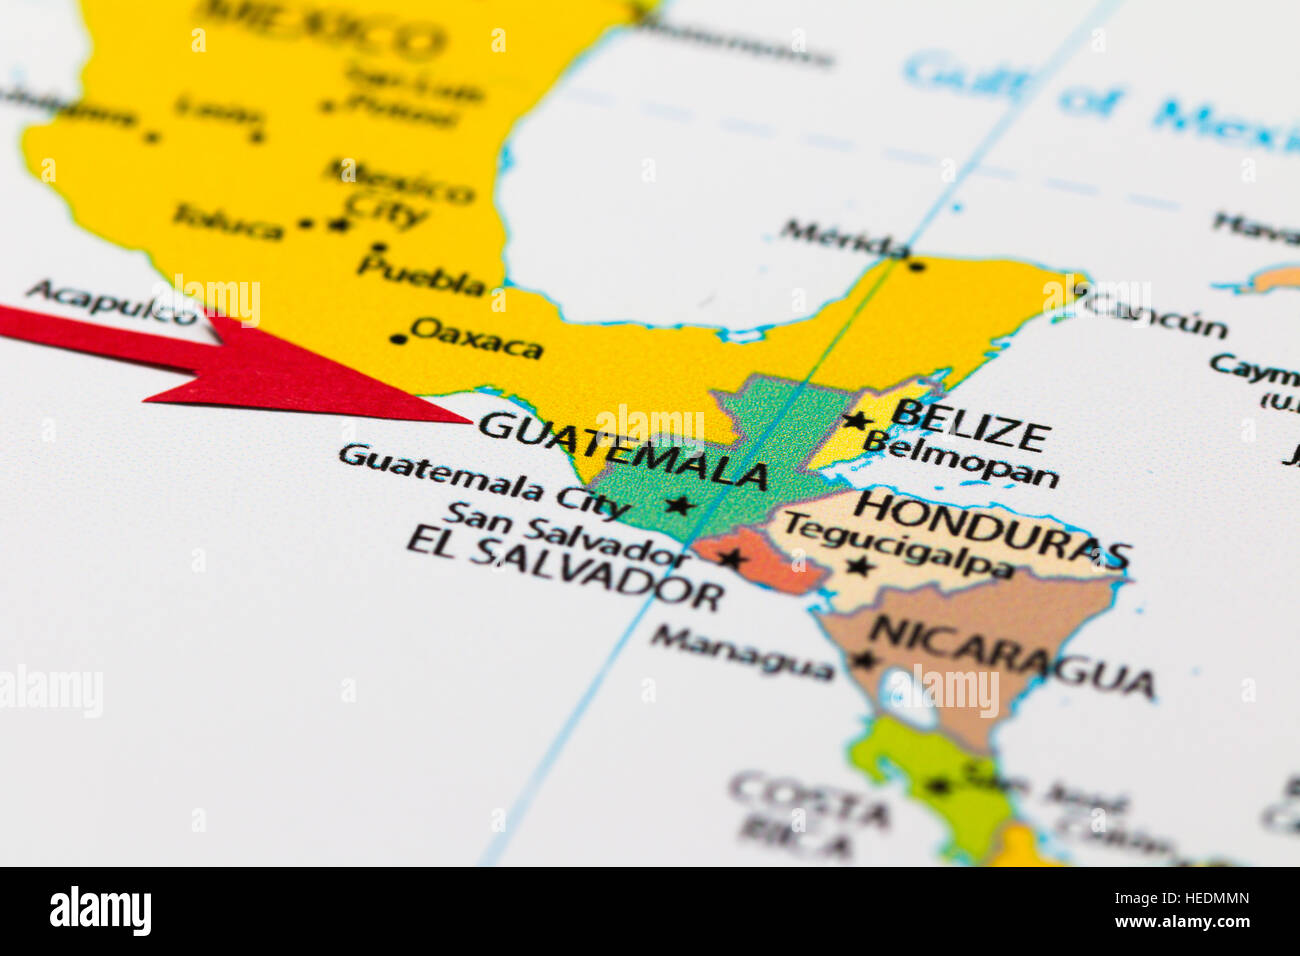 Guatemala Map Stockfotos & Guatemala Map Bilder - Alamy